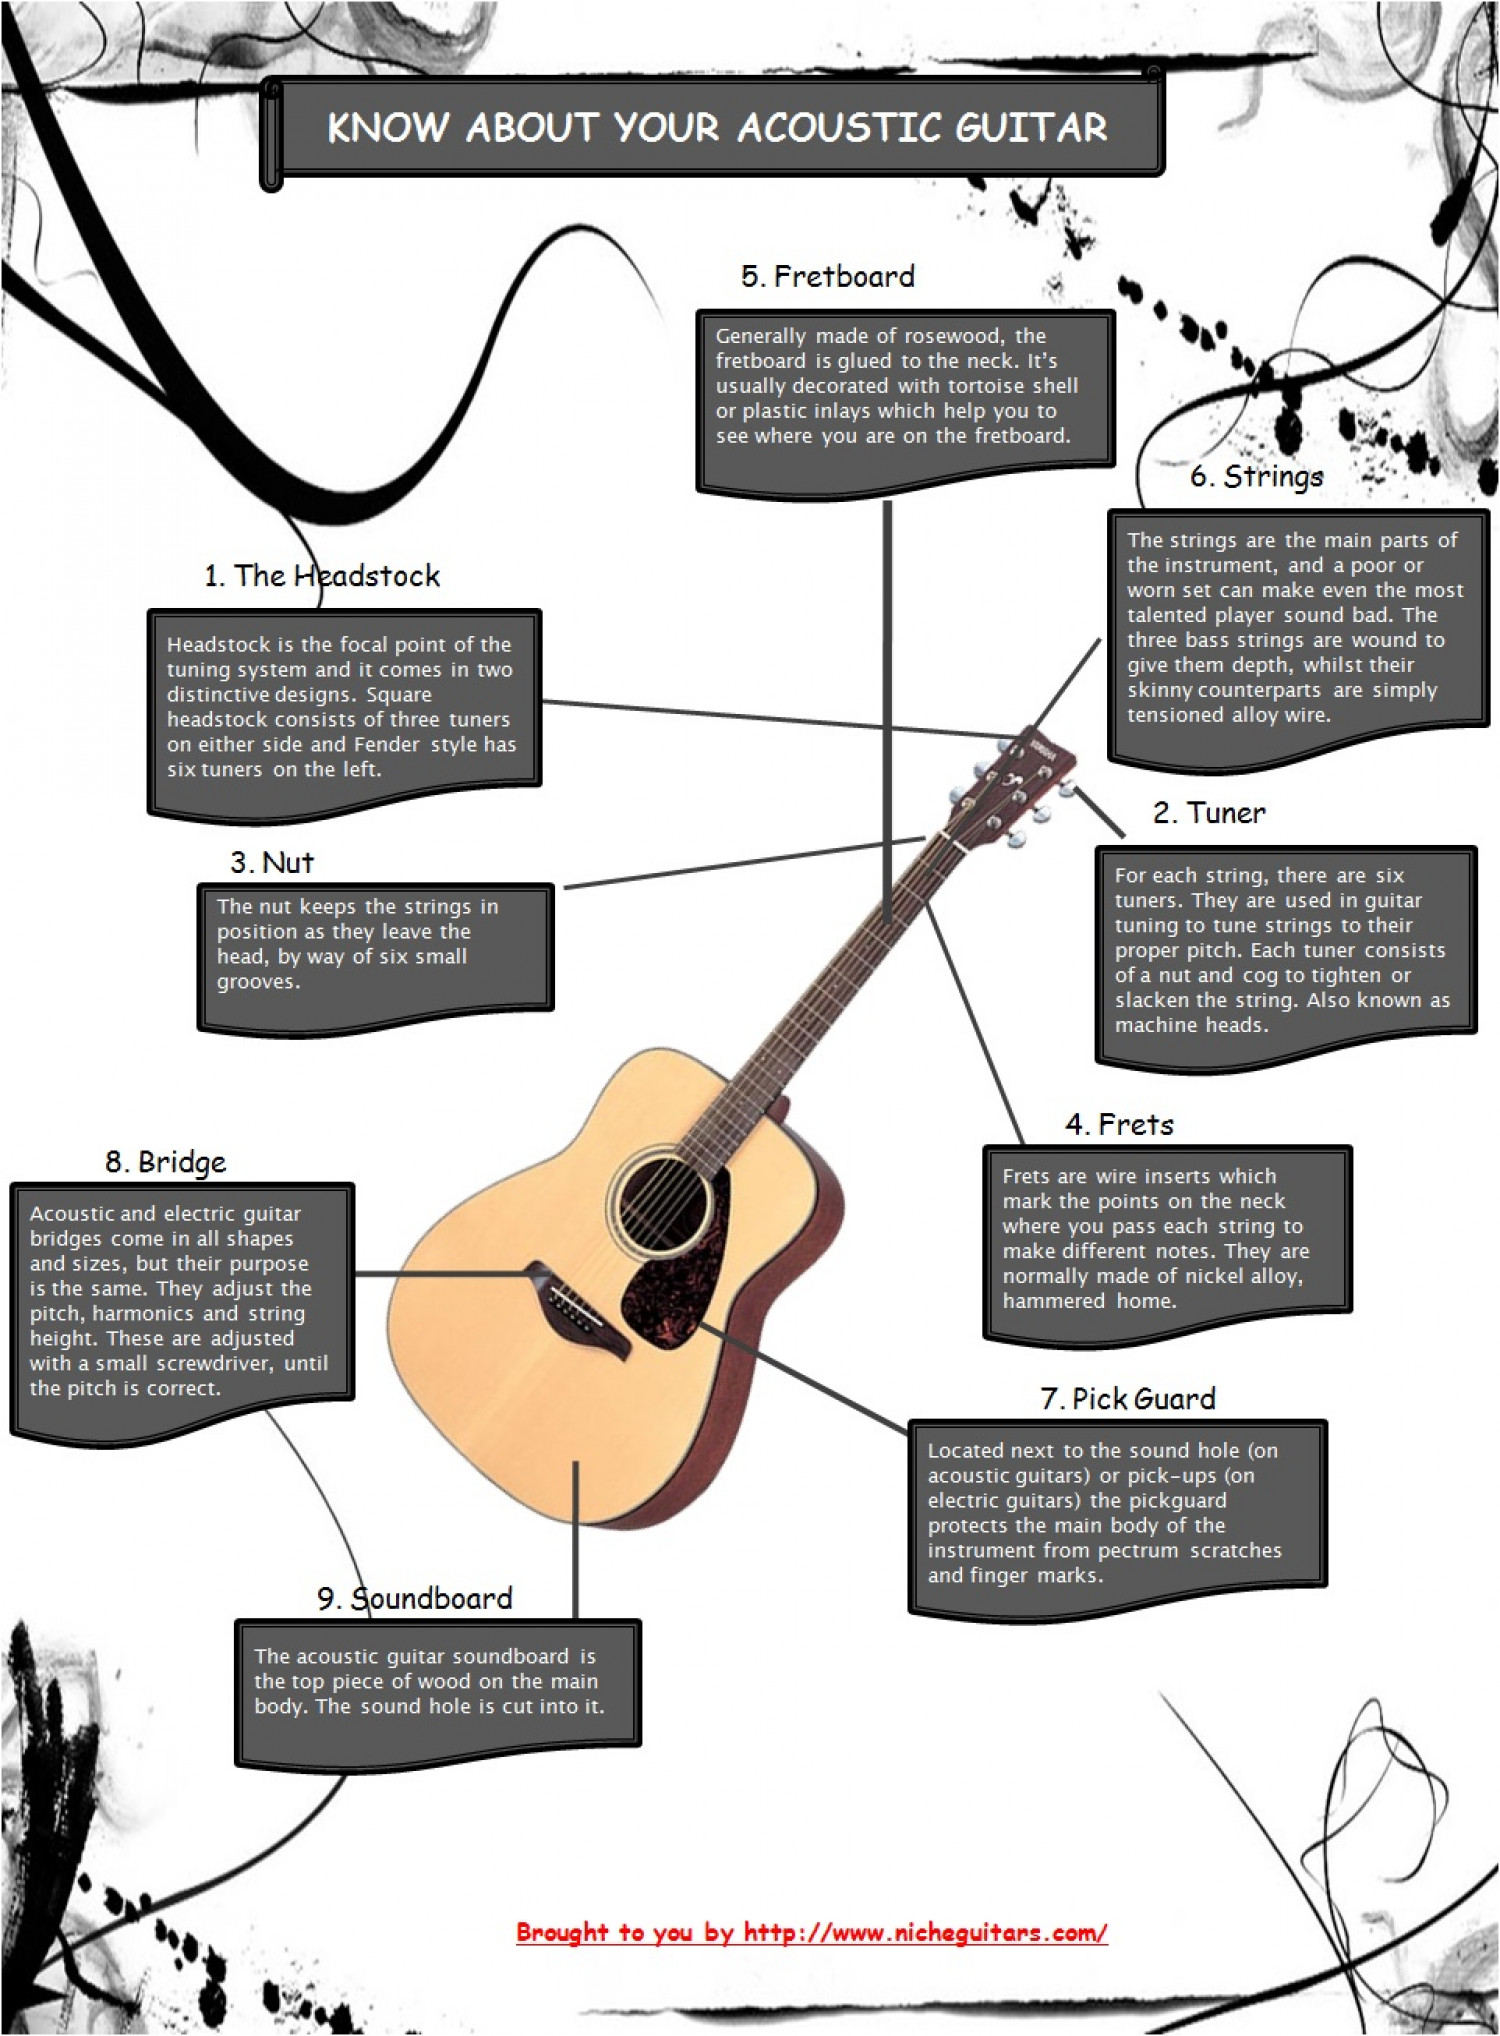 Know About Your Acoustic Guitar Infographic